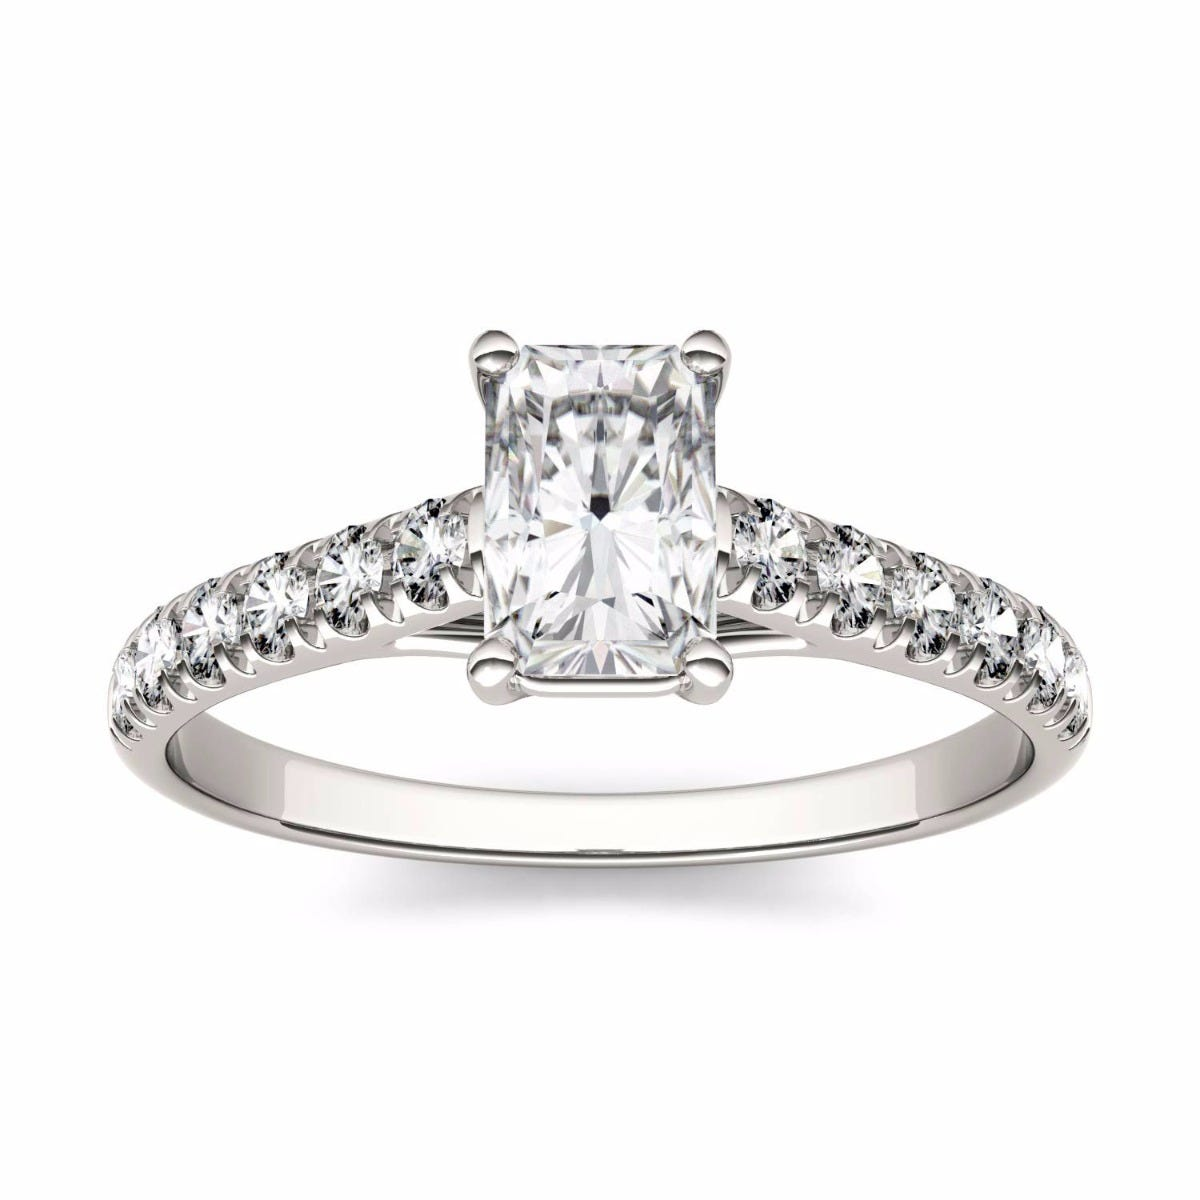 Forever One Radiant Moissanite Solitaire with Side Accents Engagement Ring